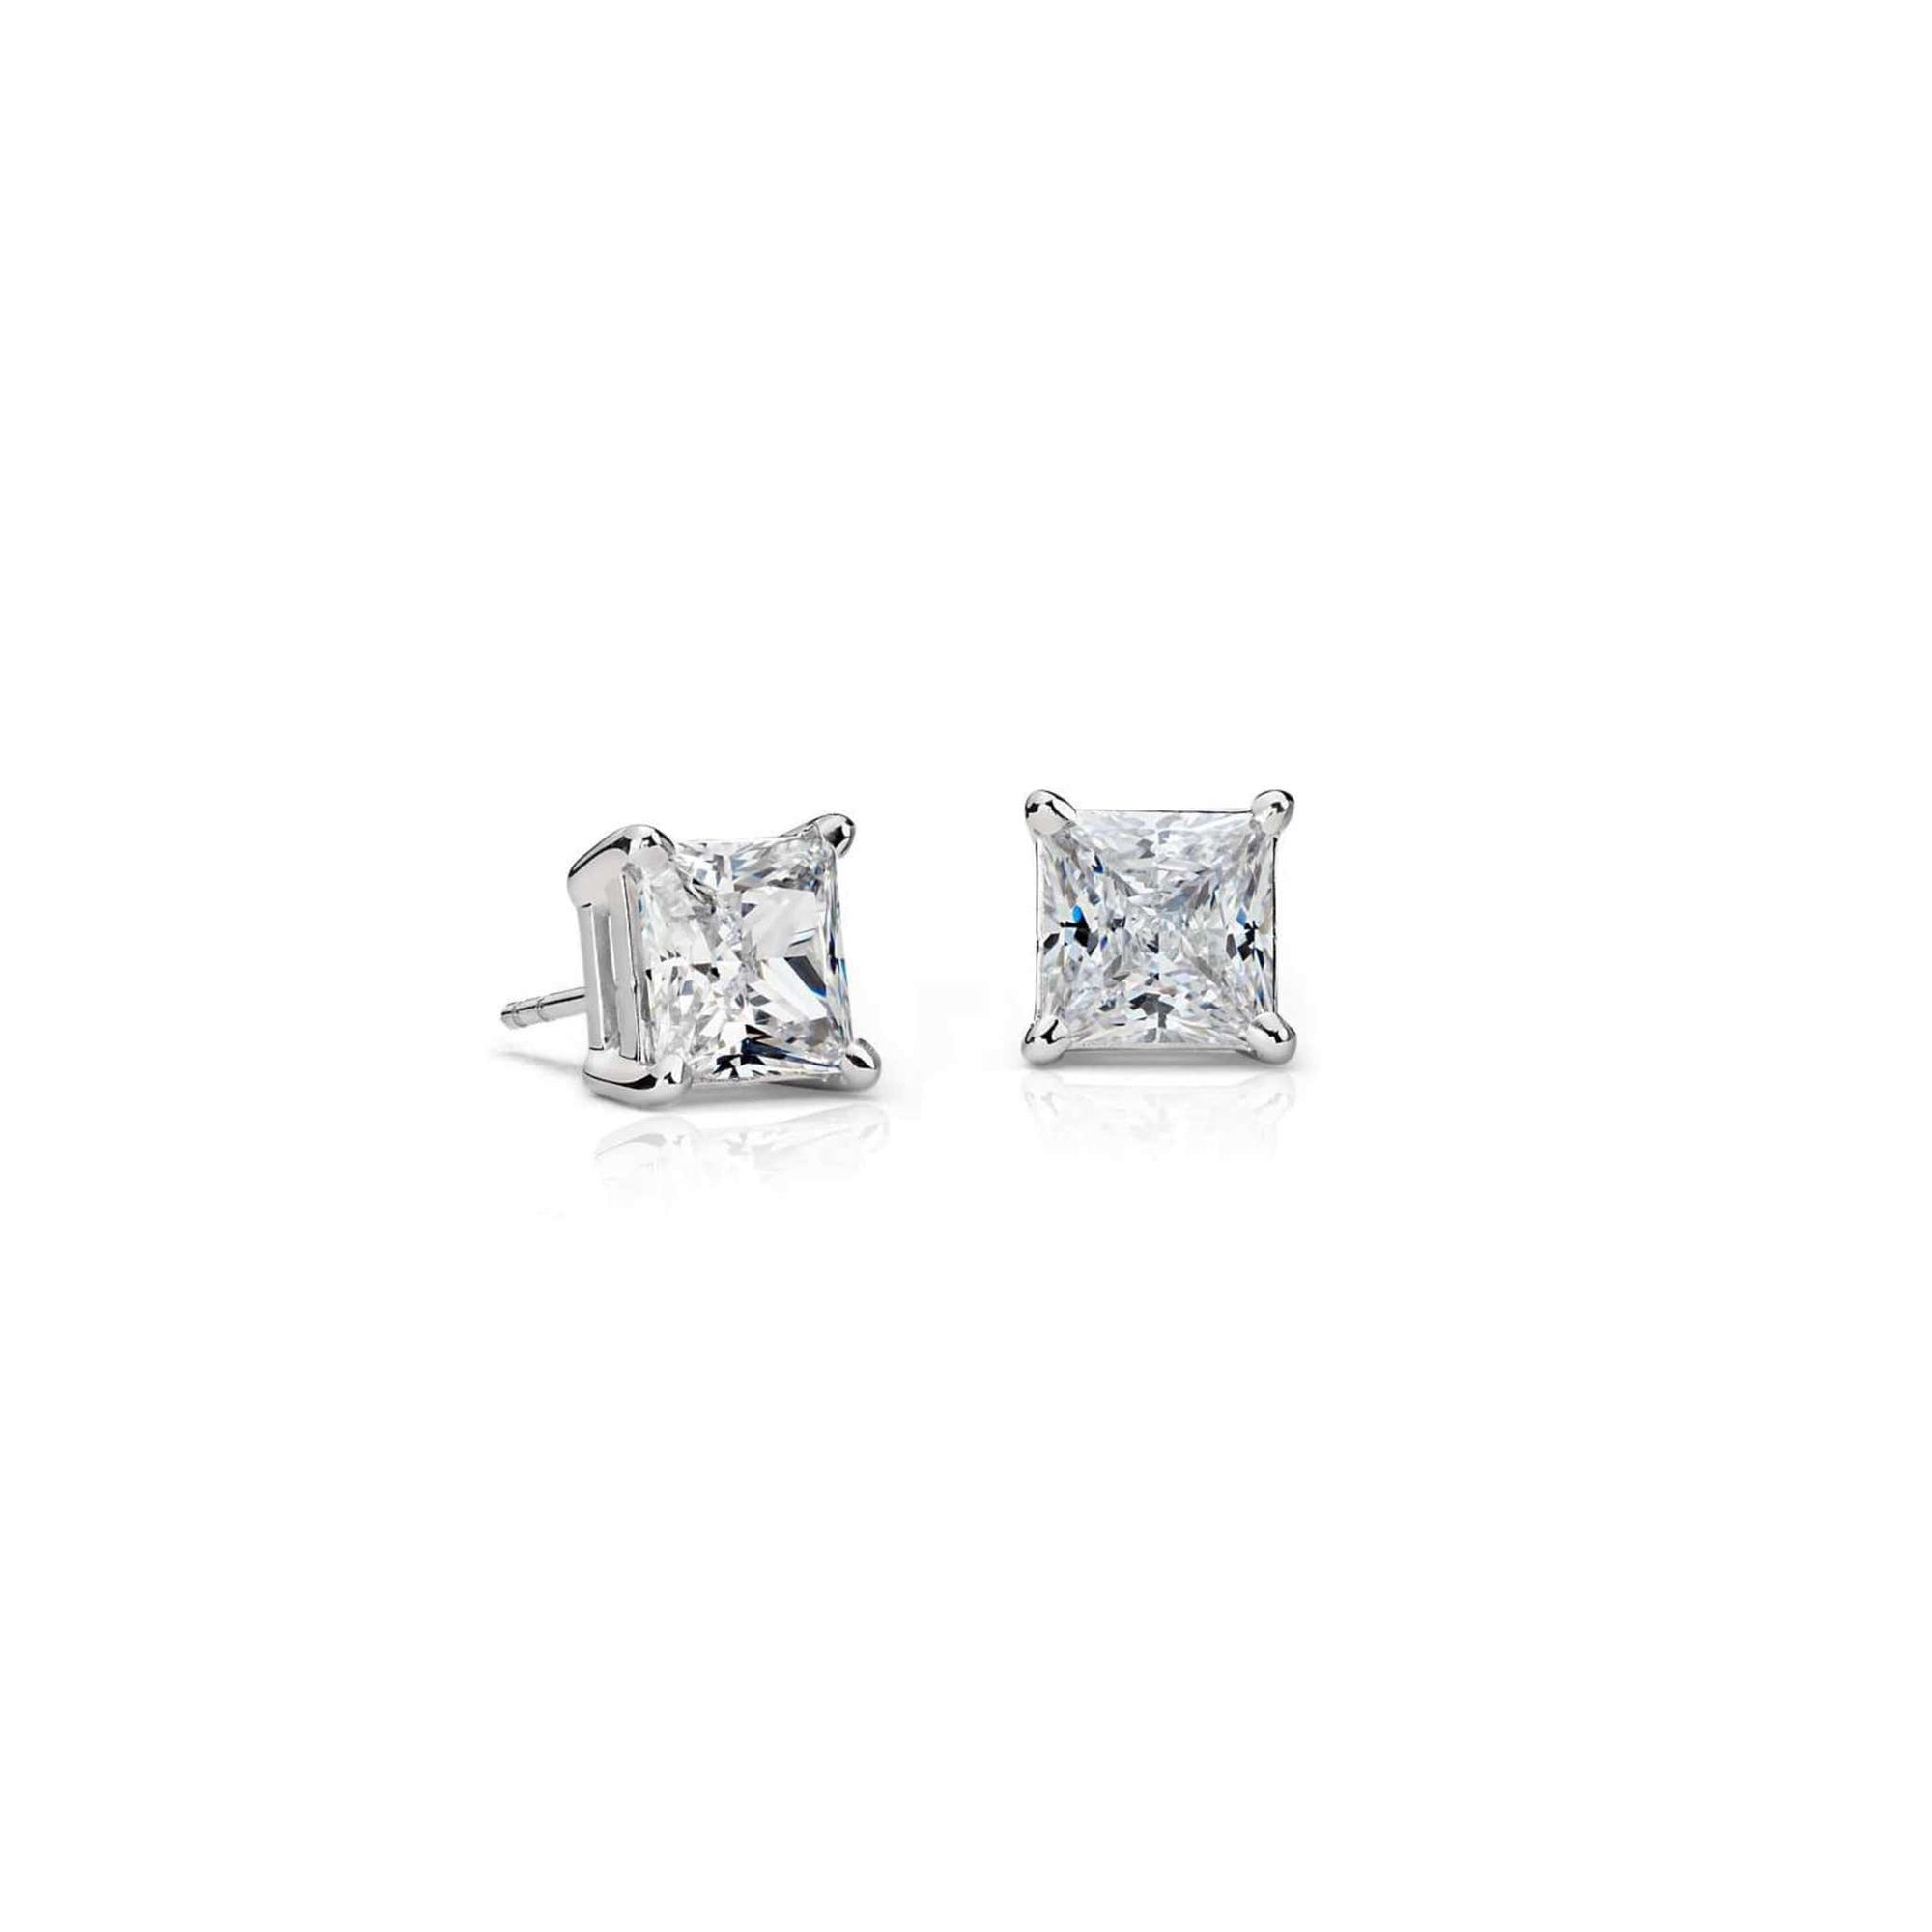 14K White Gold Princess-Cut Diamond Stud Earrings (0.50 CT. TW.) at Arman's Jewellers